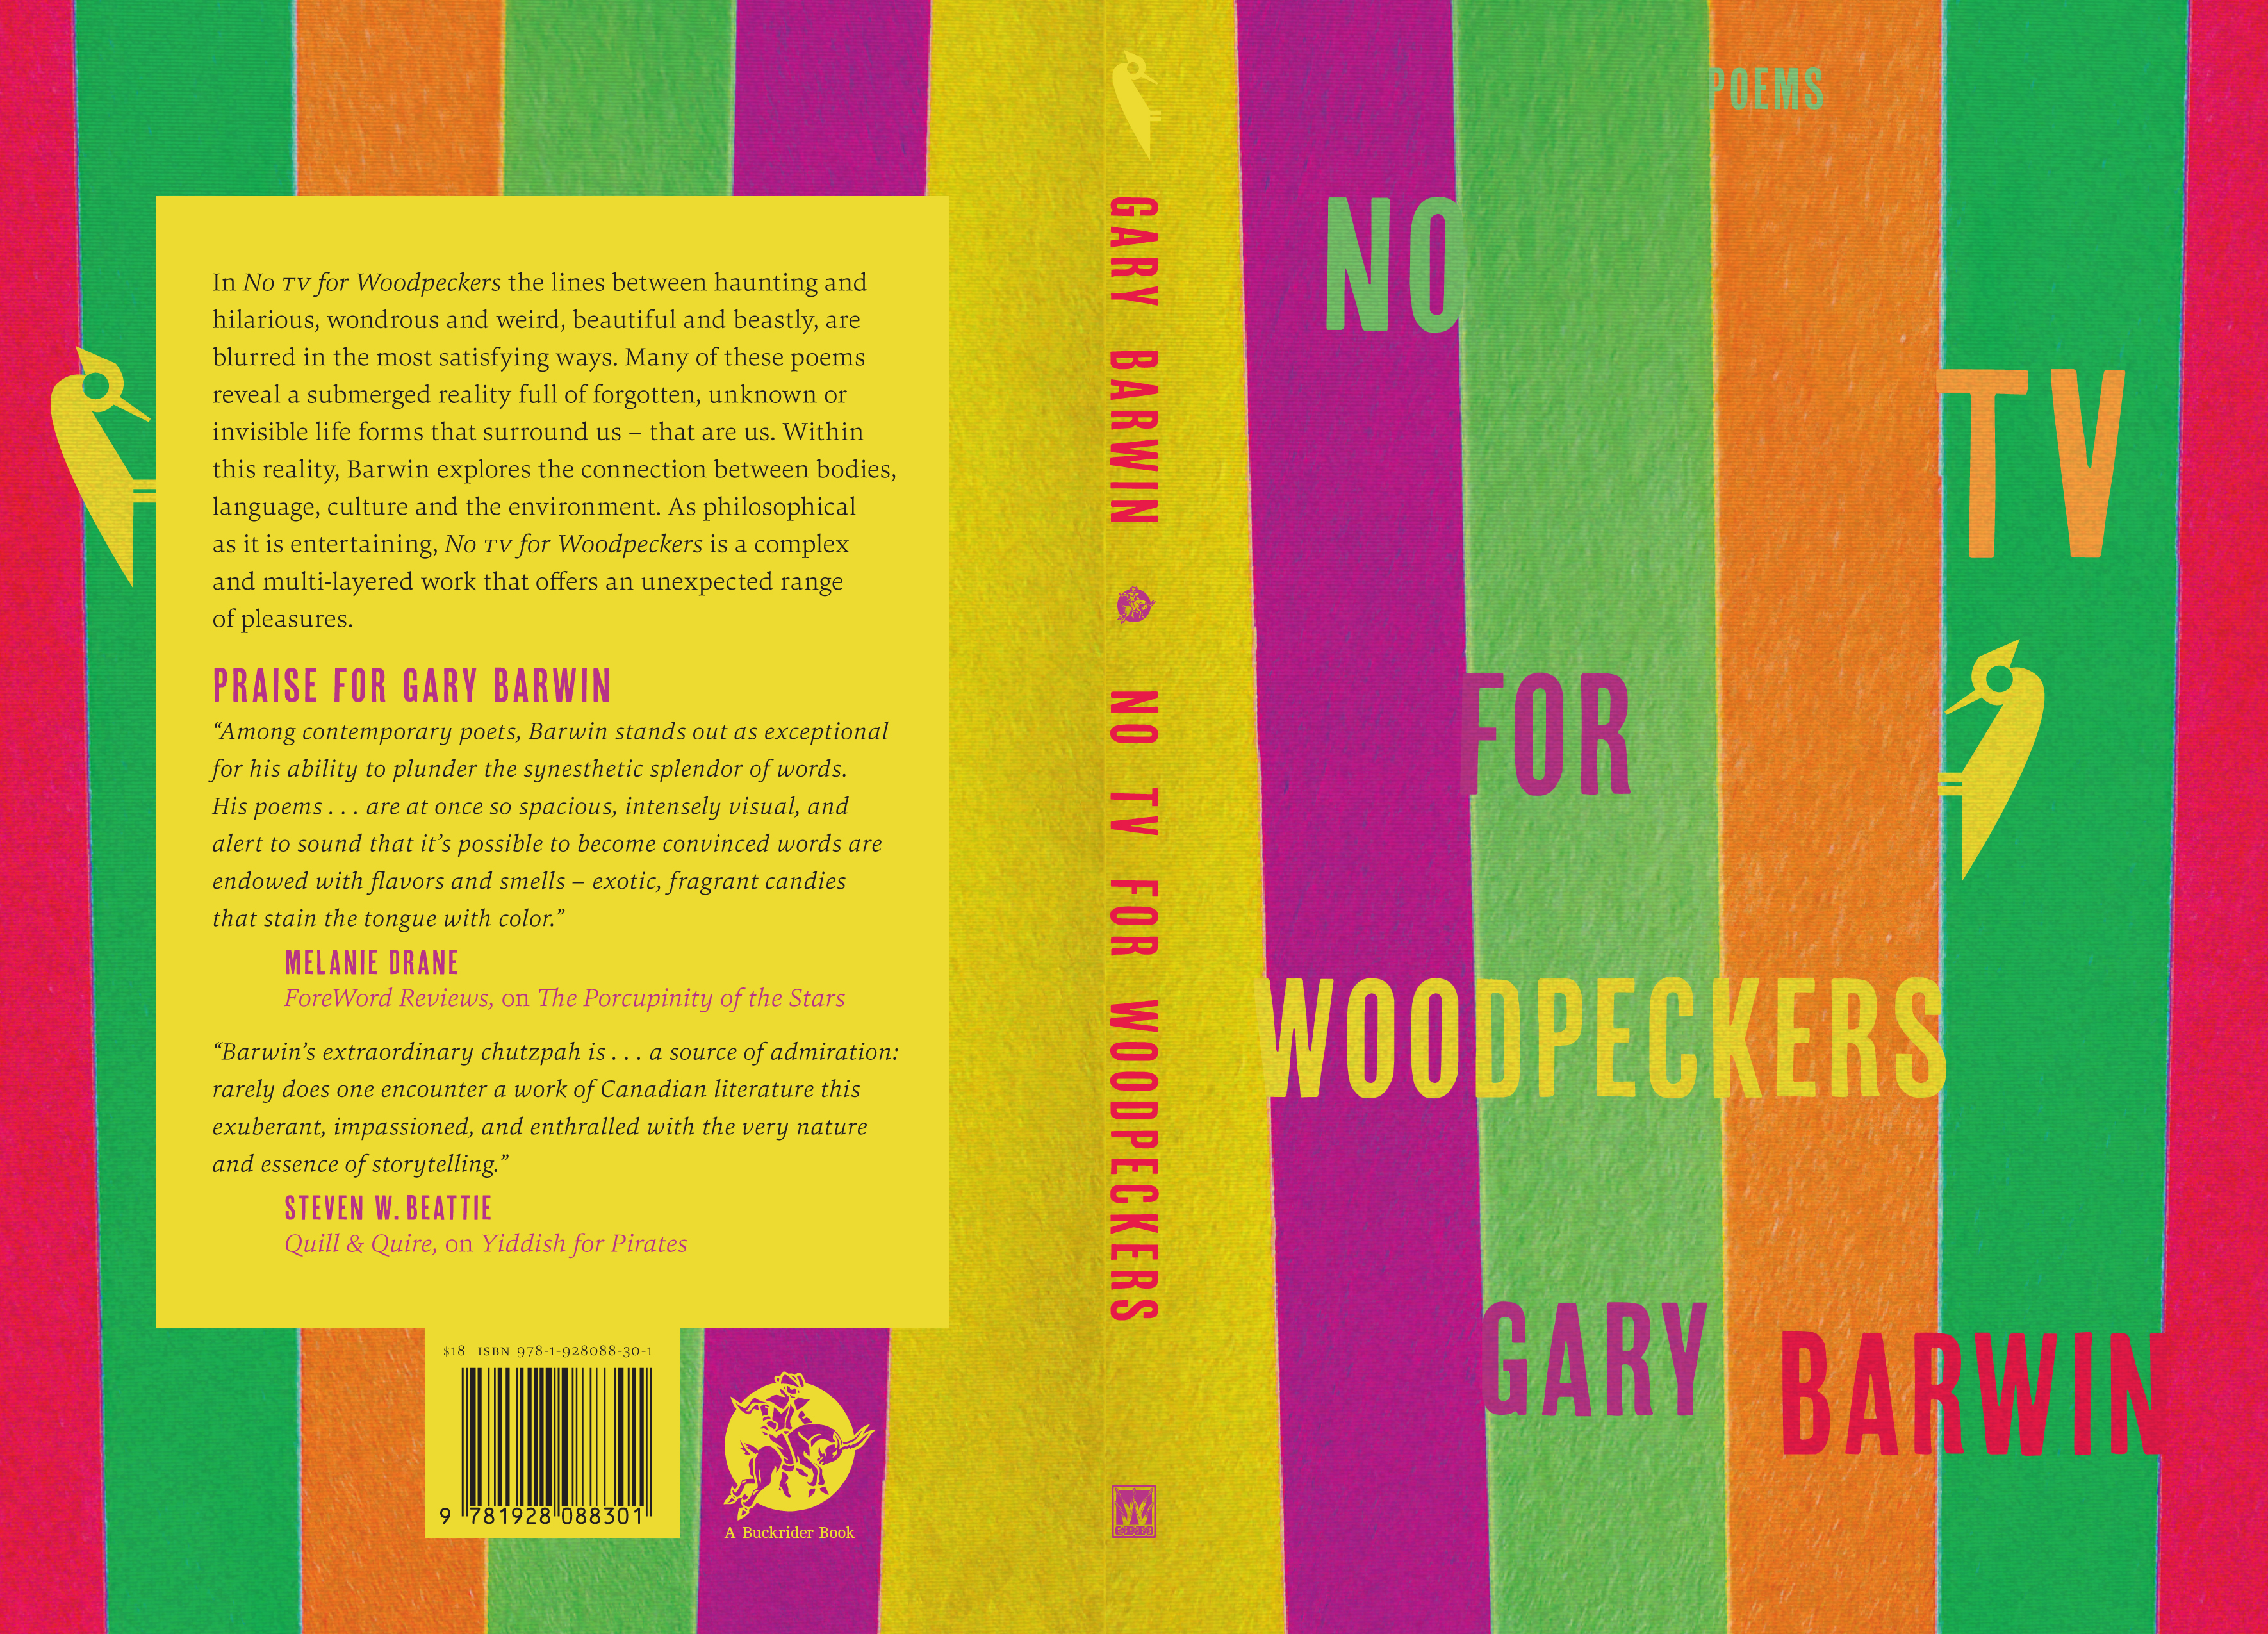 No TV for Woodpeckers Jacket 2